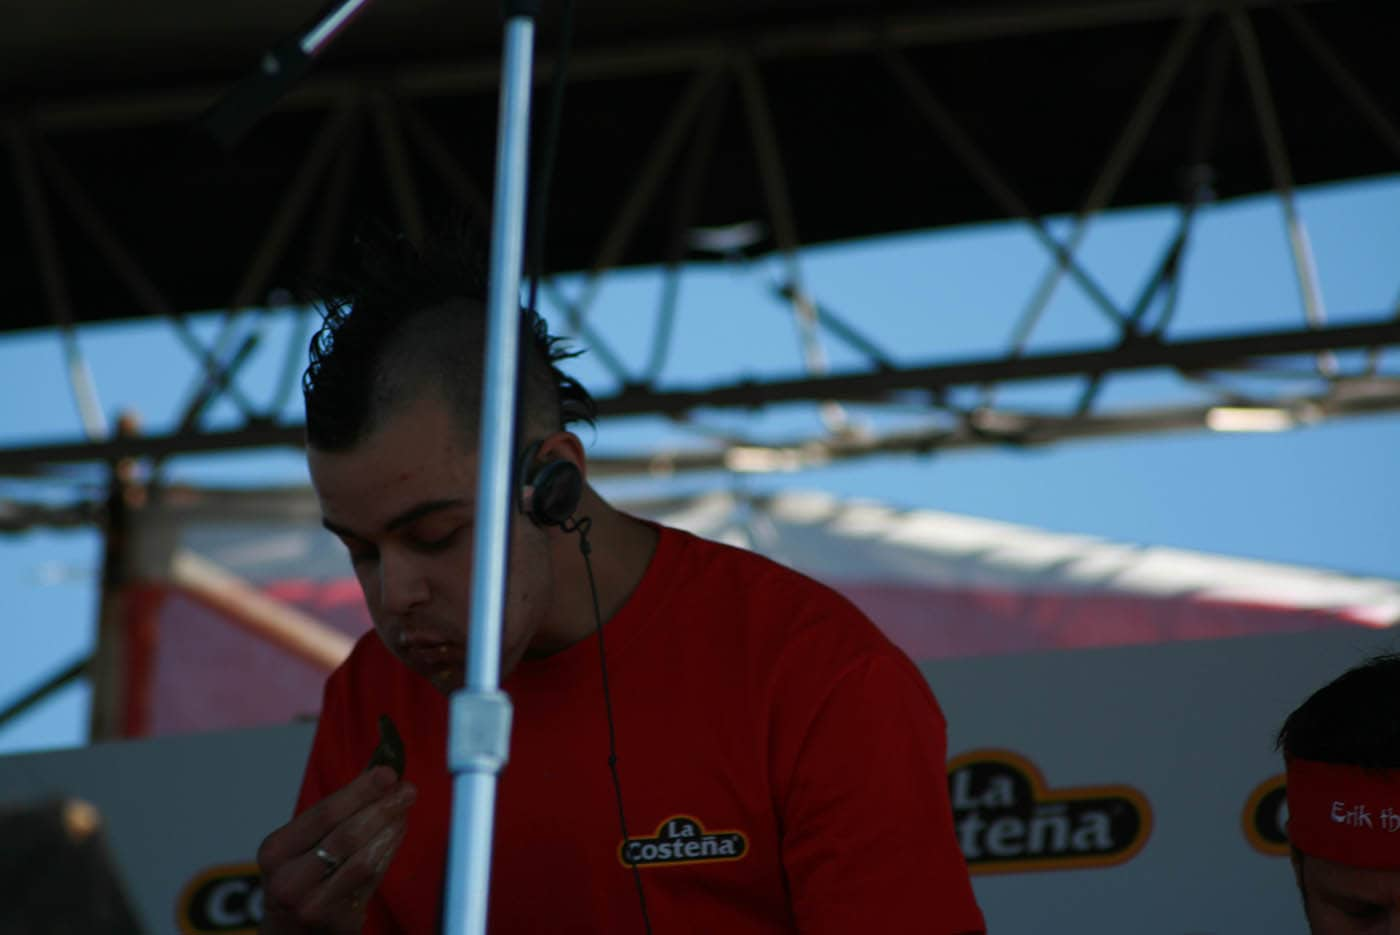 """Pat Bertoletti eats at the La Costeña """"Feel the Heat"""" Jalapeño Eating Challenge - jalapeno eating contest in Chicago."""